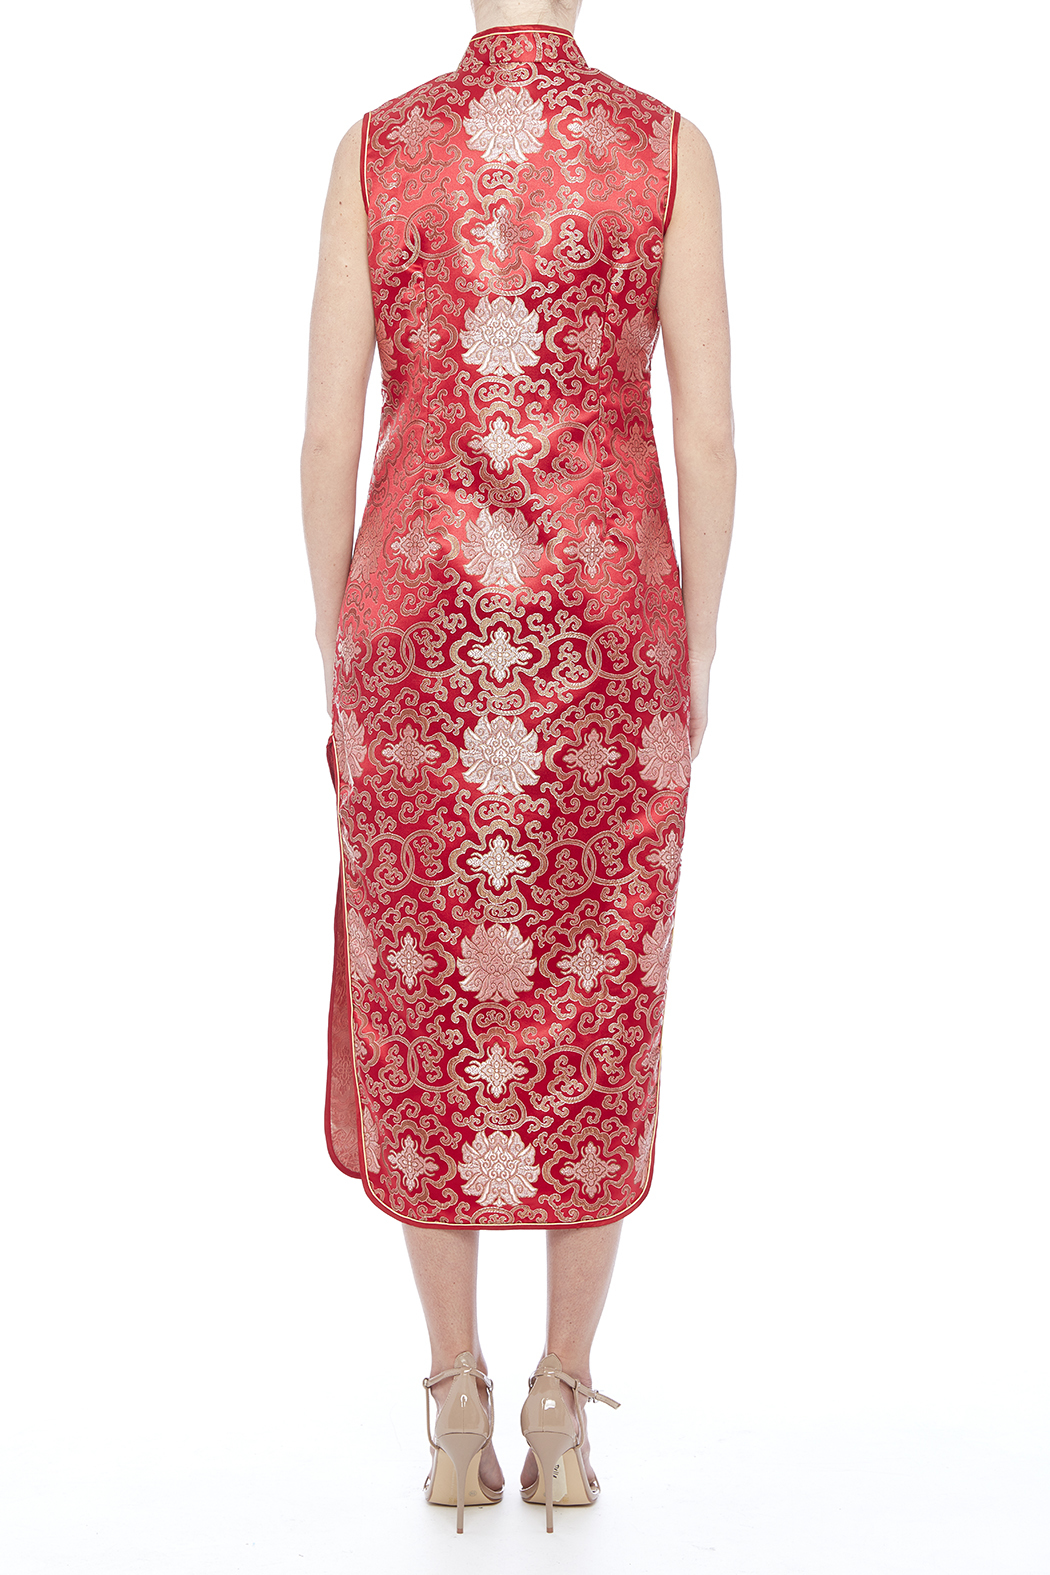 tu-anh boutique Red Cheong Sam - Back Cropped Image